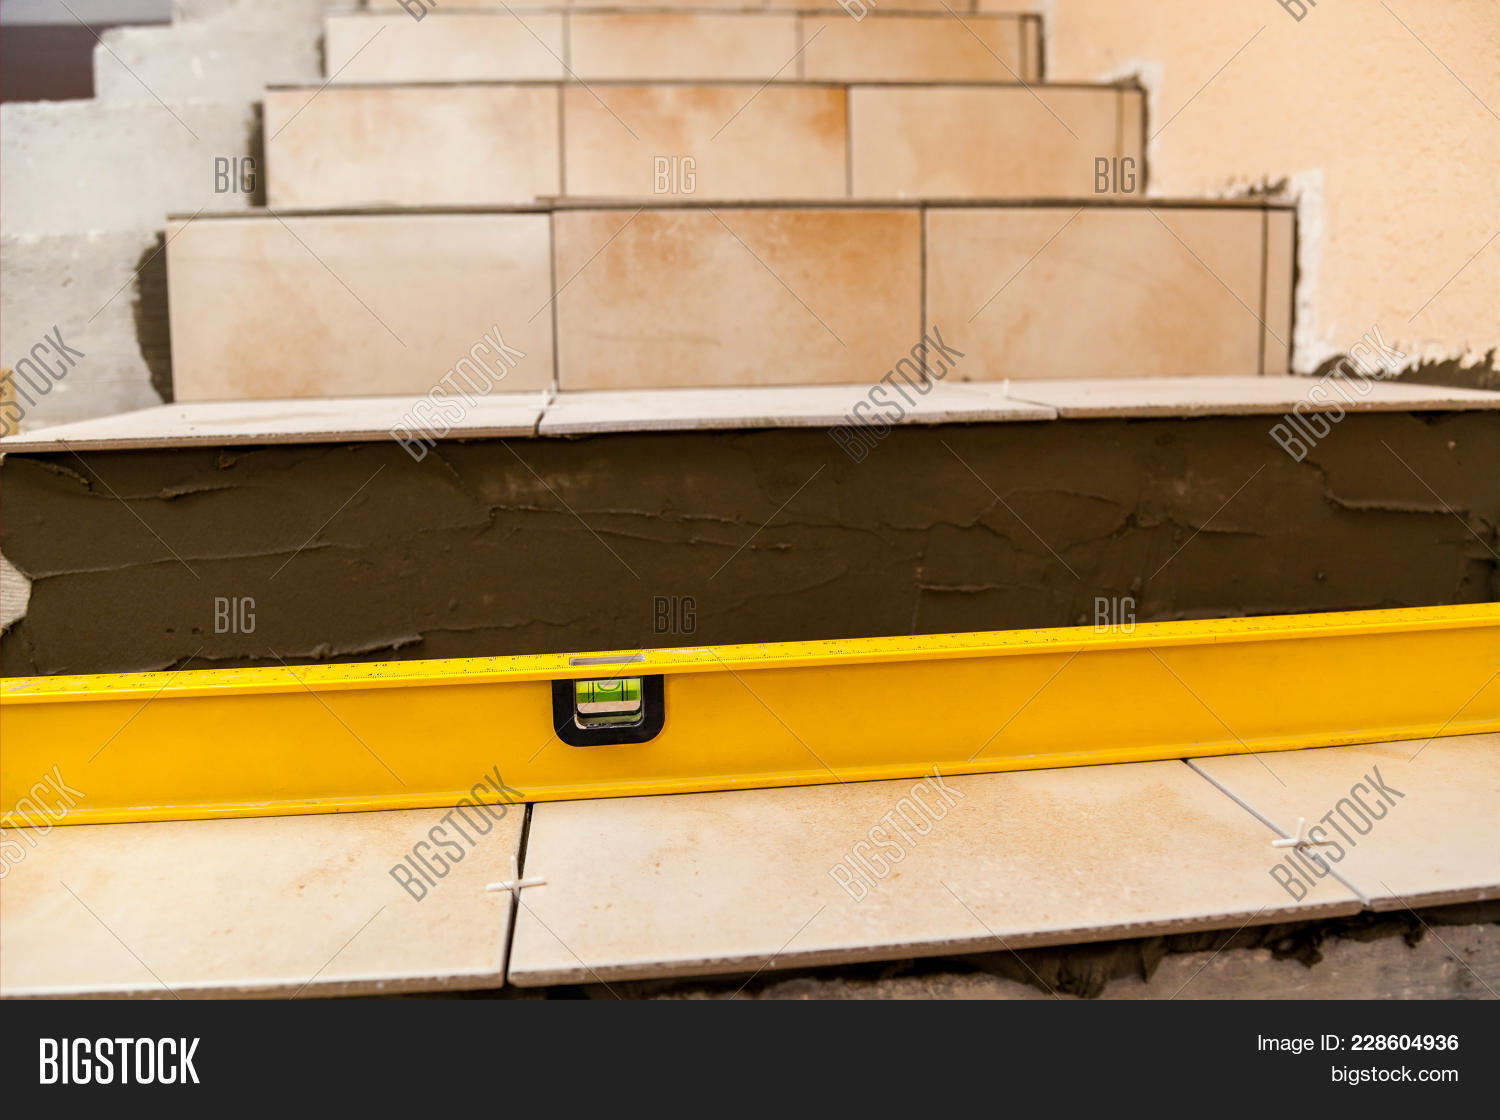 Ceramic tiles tools tiler floor image photo bigstock ceramic tiles and tools for tiler floor tiles installation home improvement renovation tile dailygadgetfo Image collections